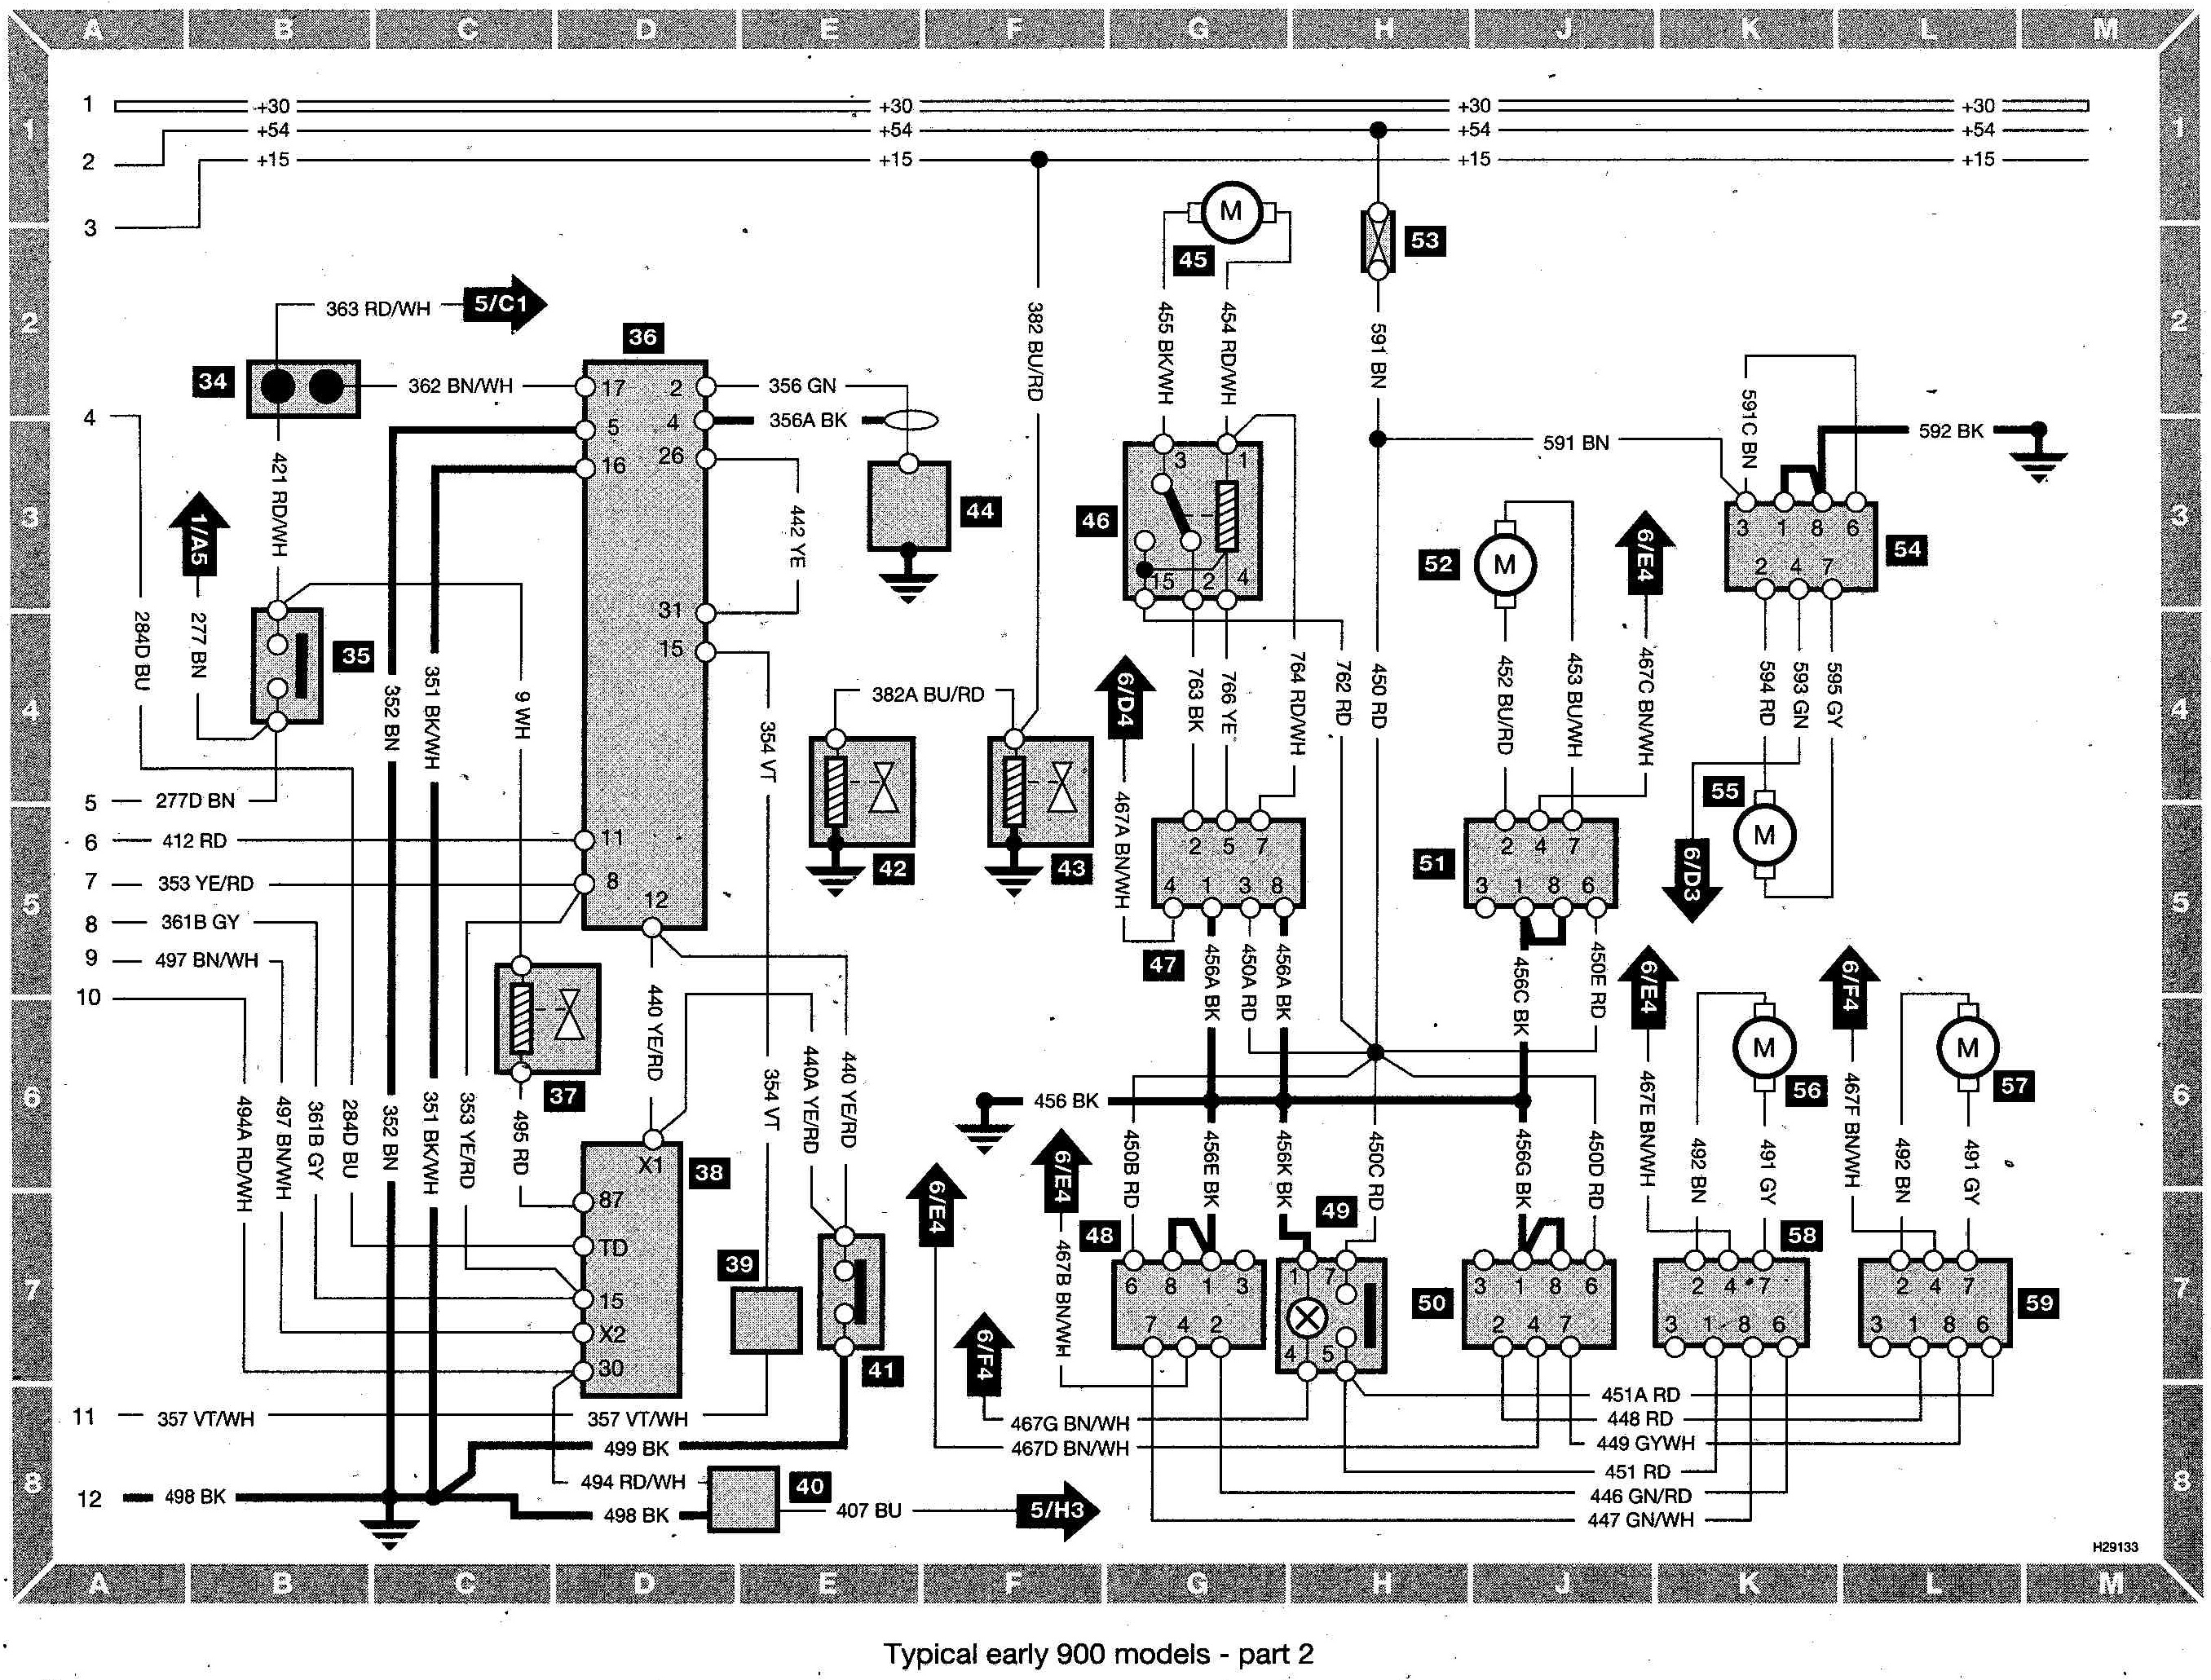 Saab 900 Wiring diagram (early models) part 2?resized665%2C505 saab wiring diagrams efcaviation com saab 900 wiring diagram pdf at aneh.co